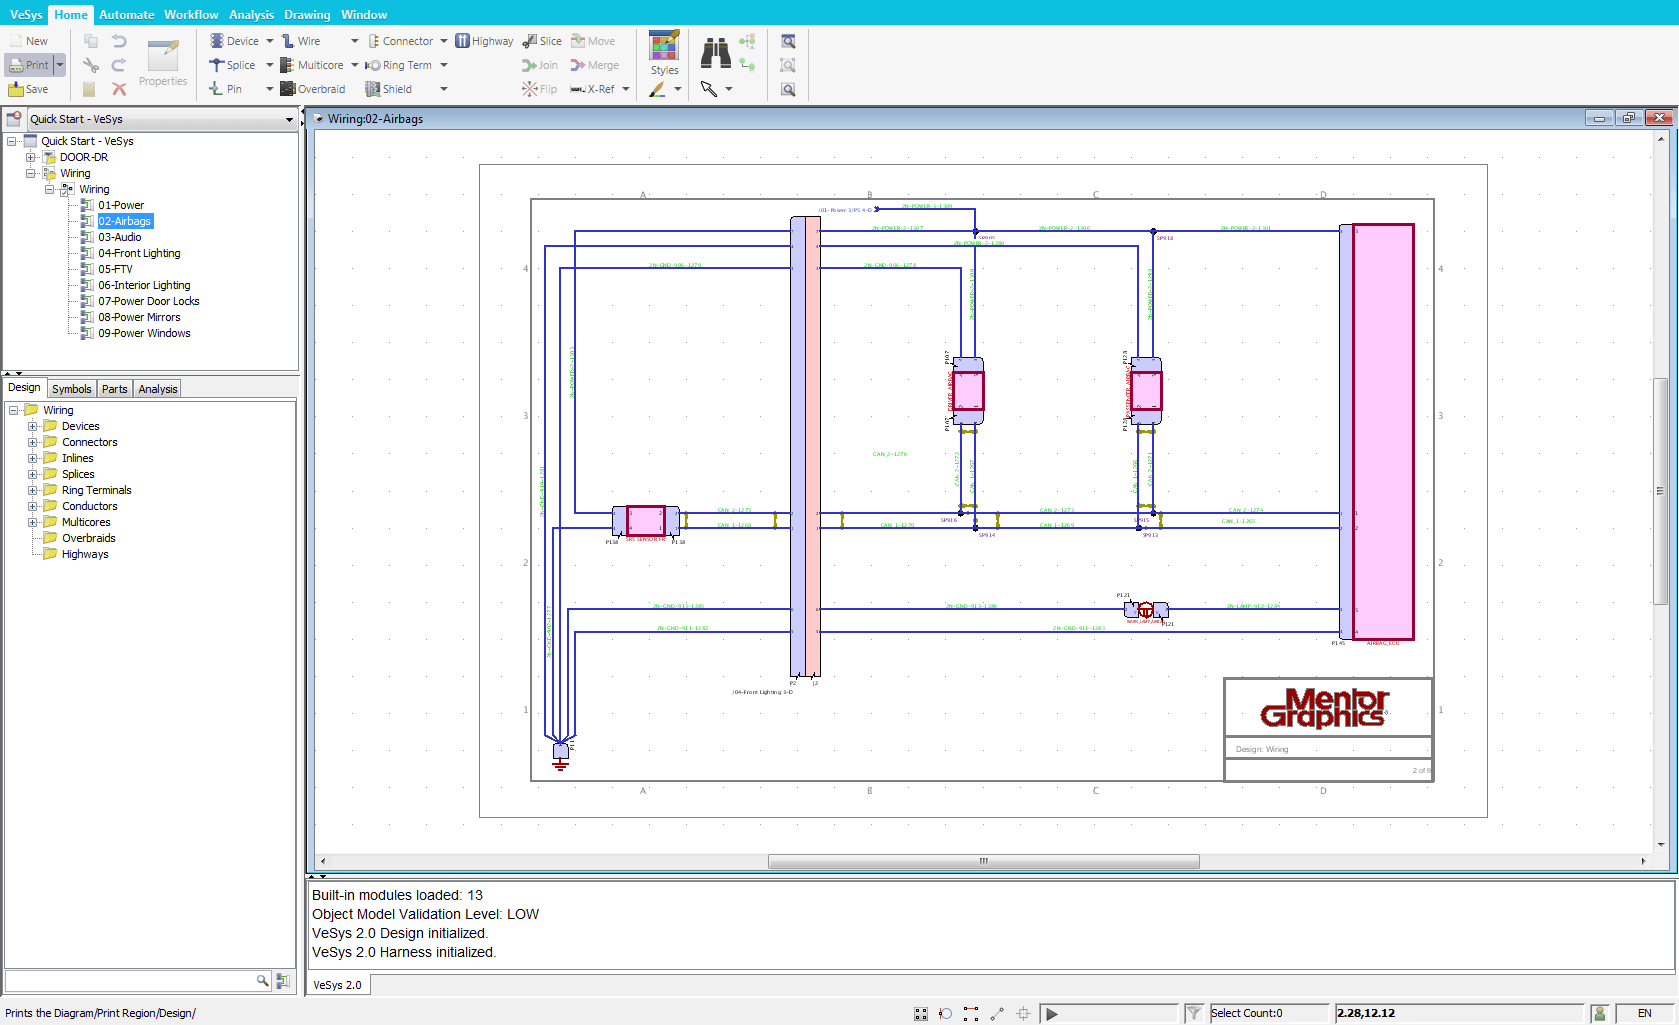 vesys design mentor graphics overload electrical symbol for drawings electrical diagram symbol splice [ 1679 x 1025 Pixel ]